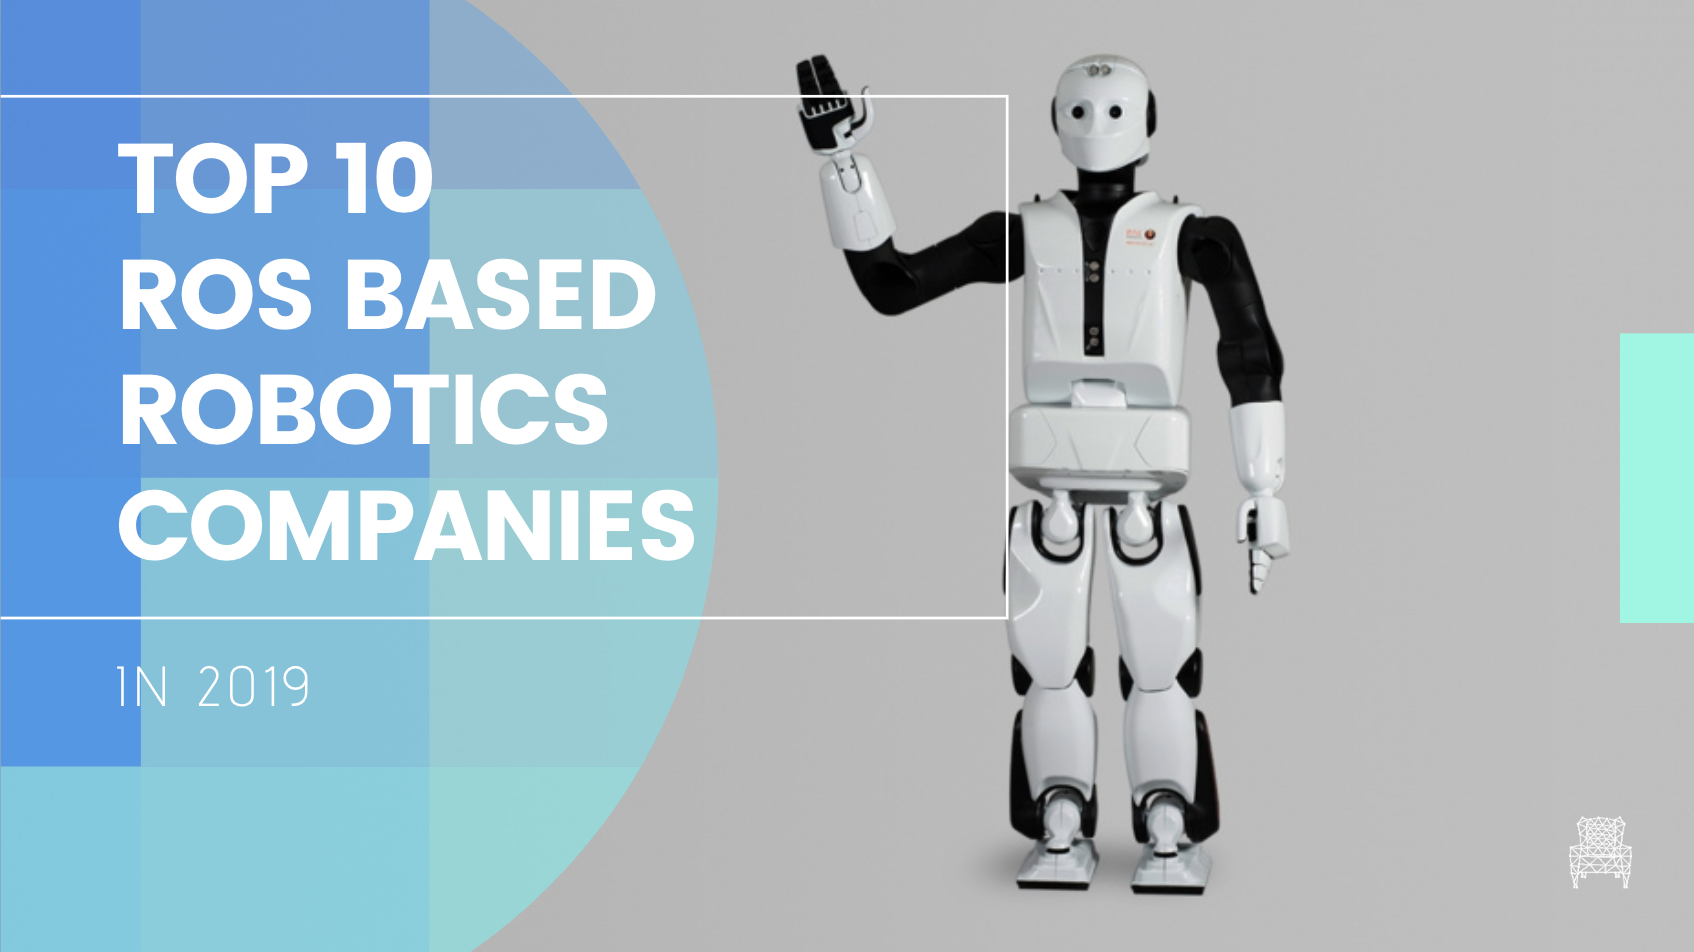 Top 10 ROS Based Robotics Companies in 2019 | The Construct